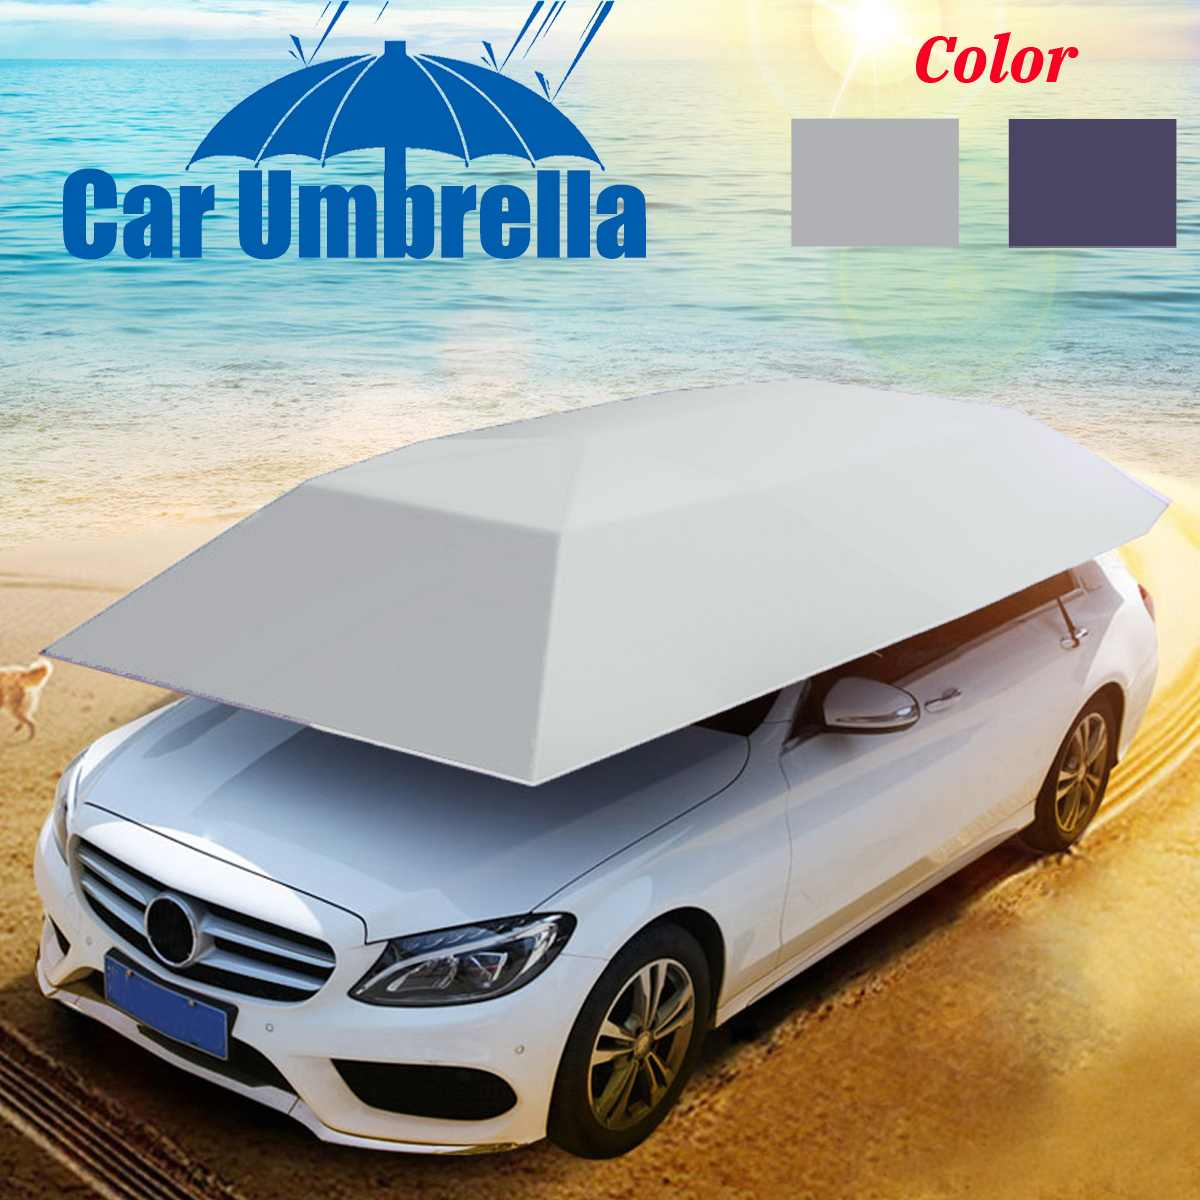 Outdoor Car Vehicle Tent Car/Picnic Umbrella Windproof Buttons Oxford Cloth Sun Shade Umbrella Auto Car Cover 4*2.1m(No Bracket)